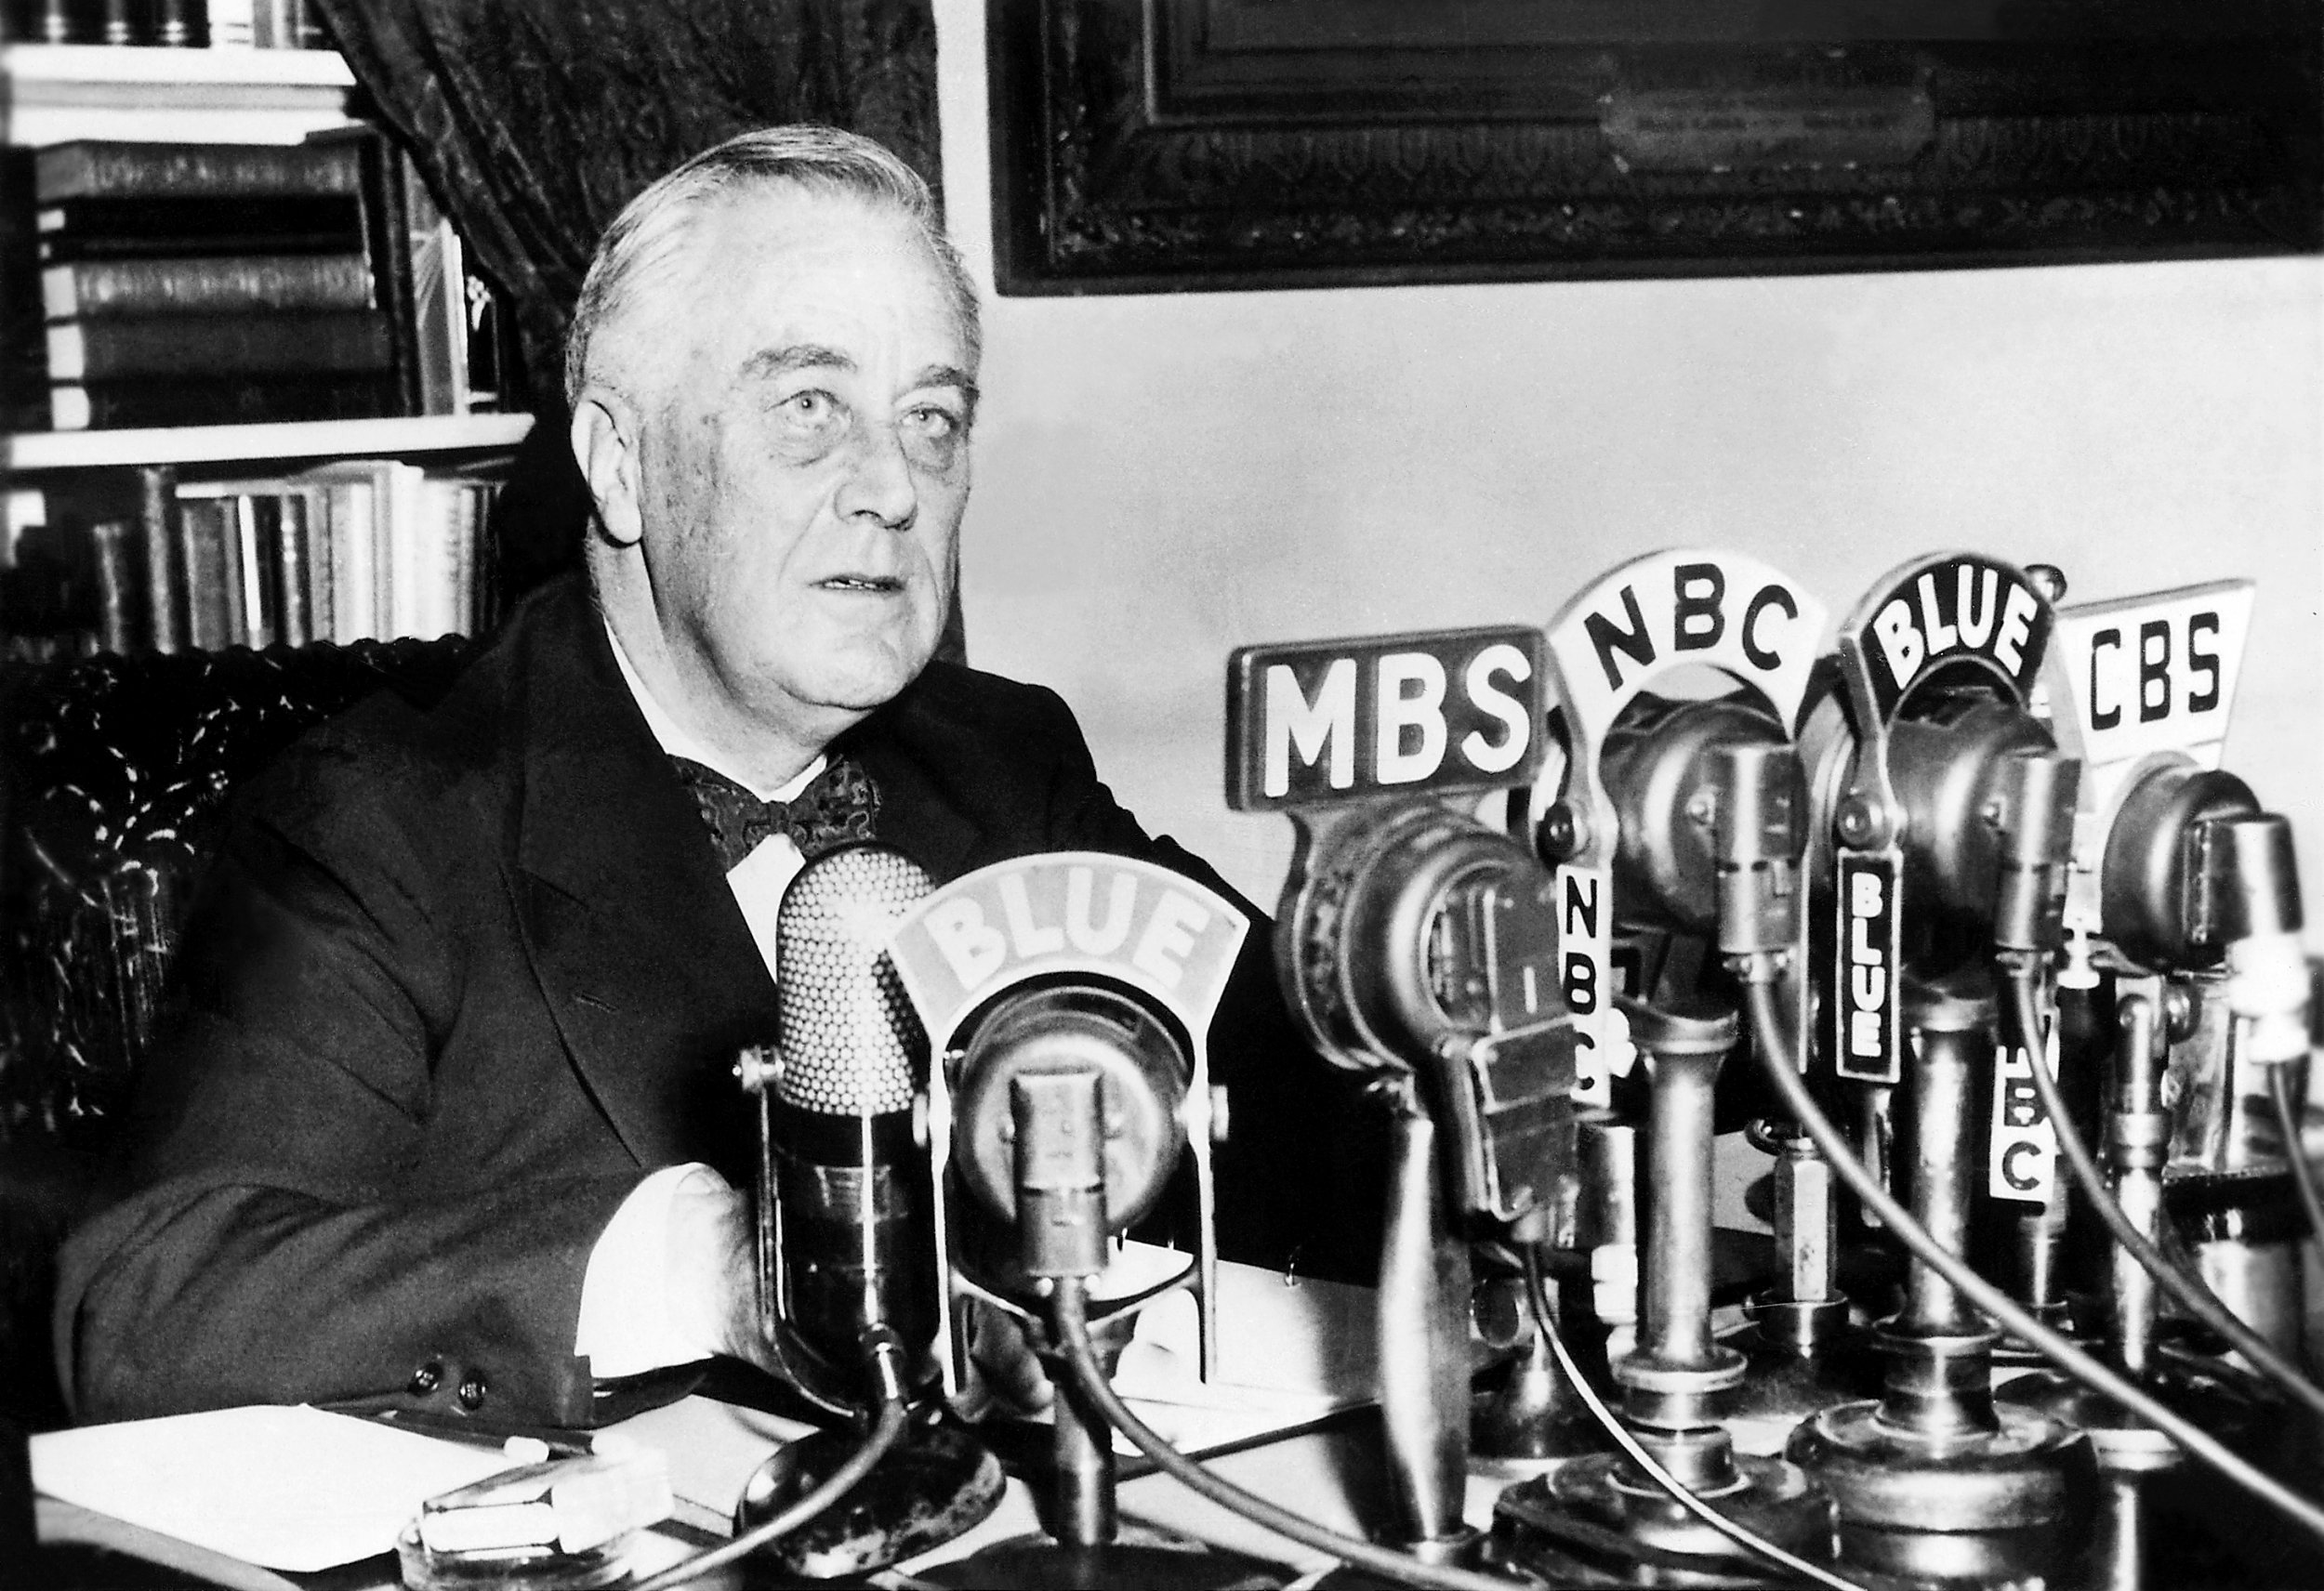 an analysis of franklin d roosevelts inaugural address goals Franklin delano roosevelt's inauguration | kennedy's inauguration   roosevelt's second inaugural address was optimistic about the gains that  let  us ask again: have we reached the goal of our vision of that fourth day of.